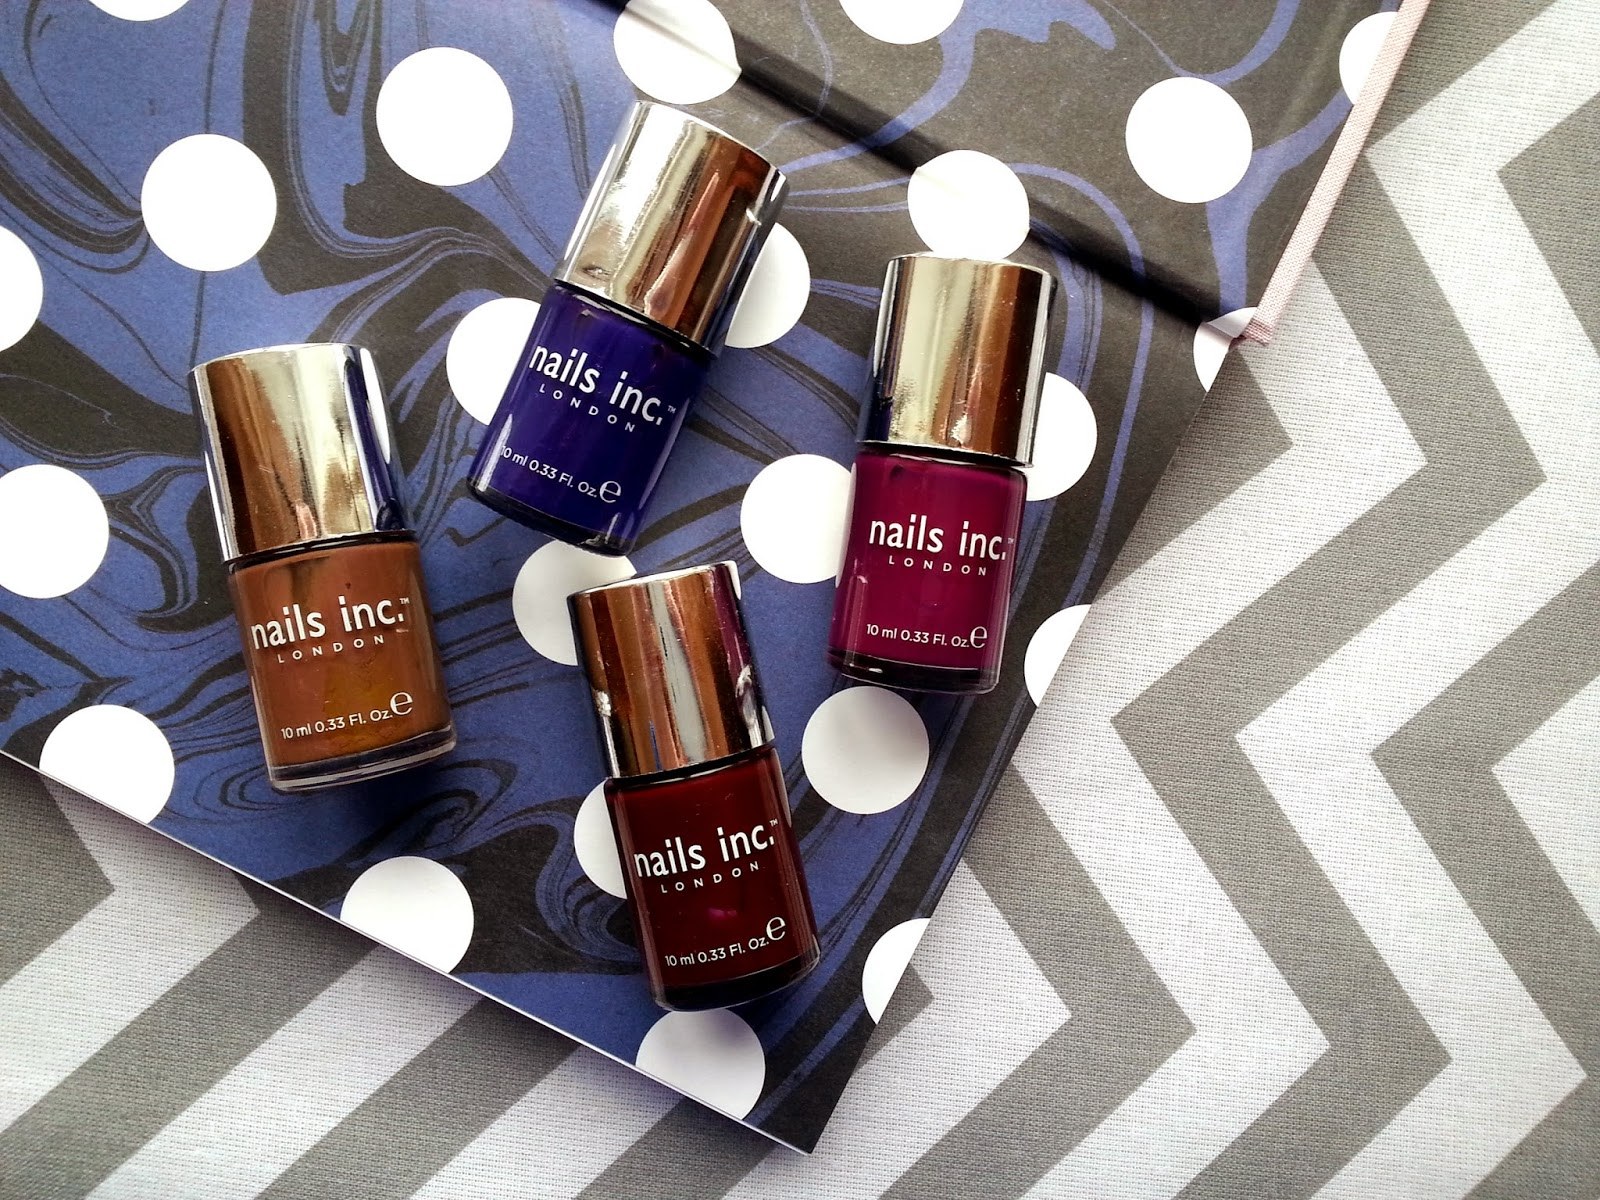 Nails Inc Autumn Winter 2013 Collection Swatches and Review